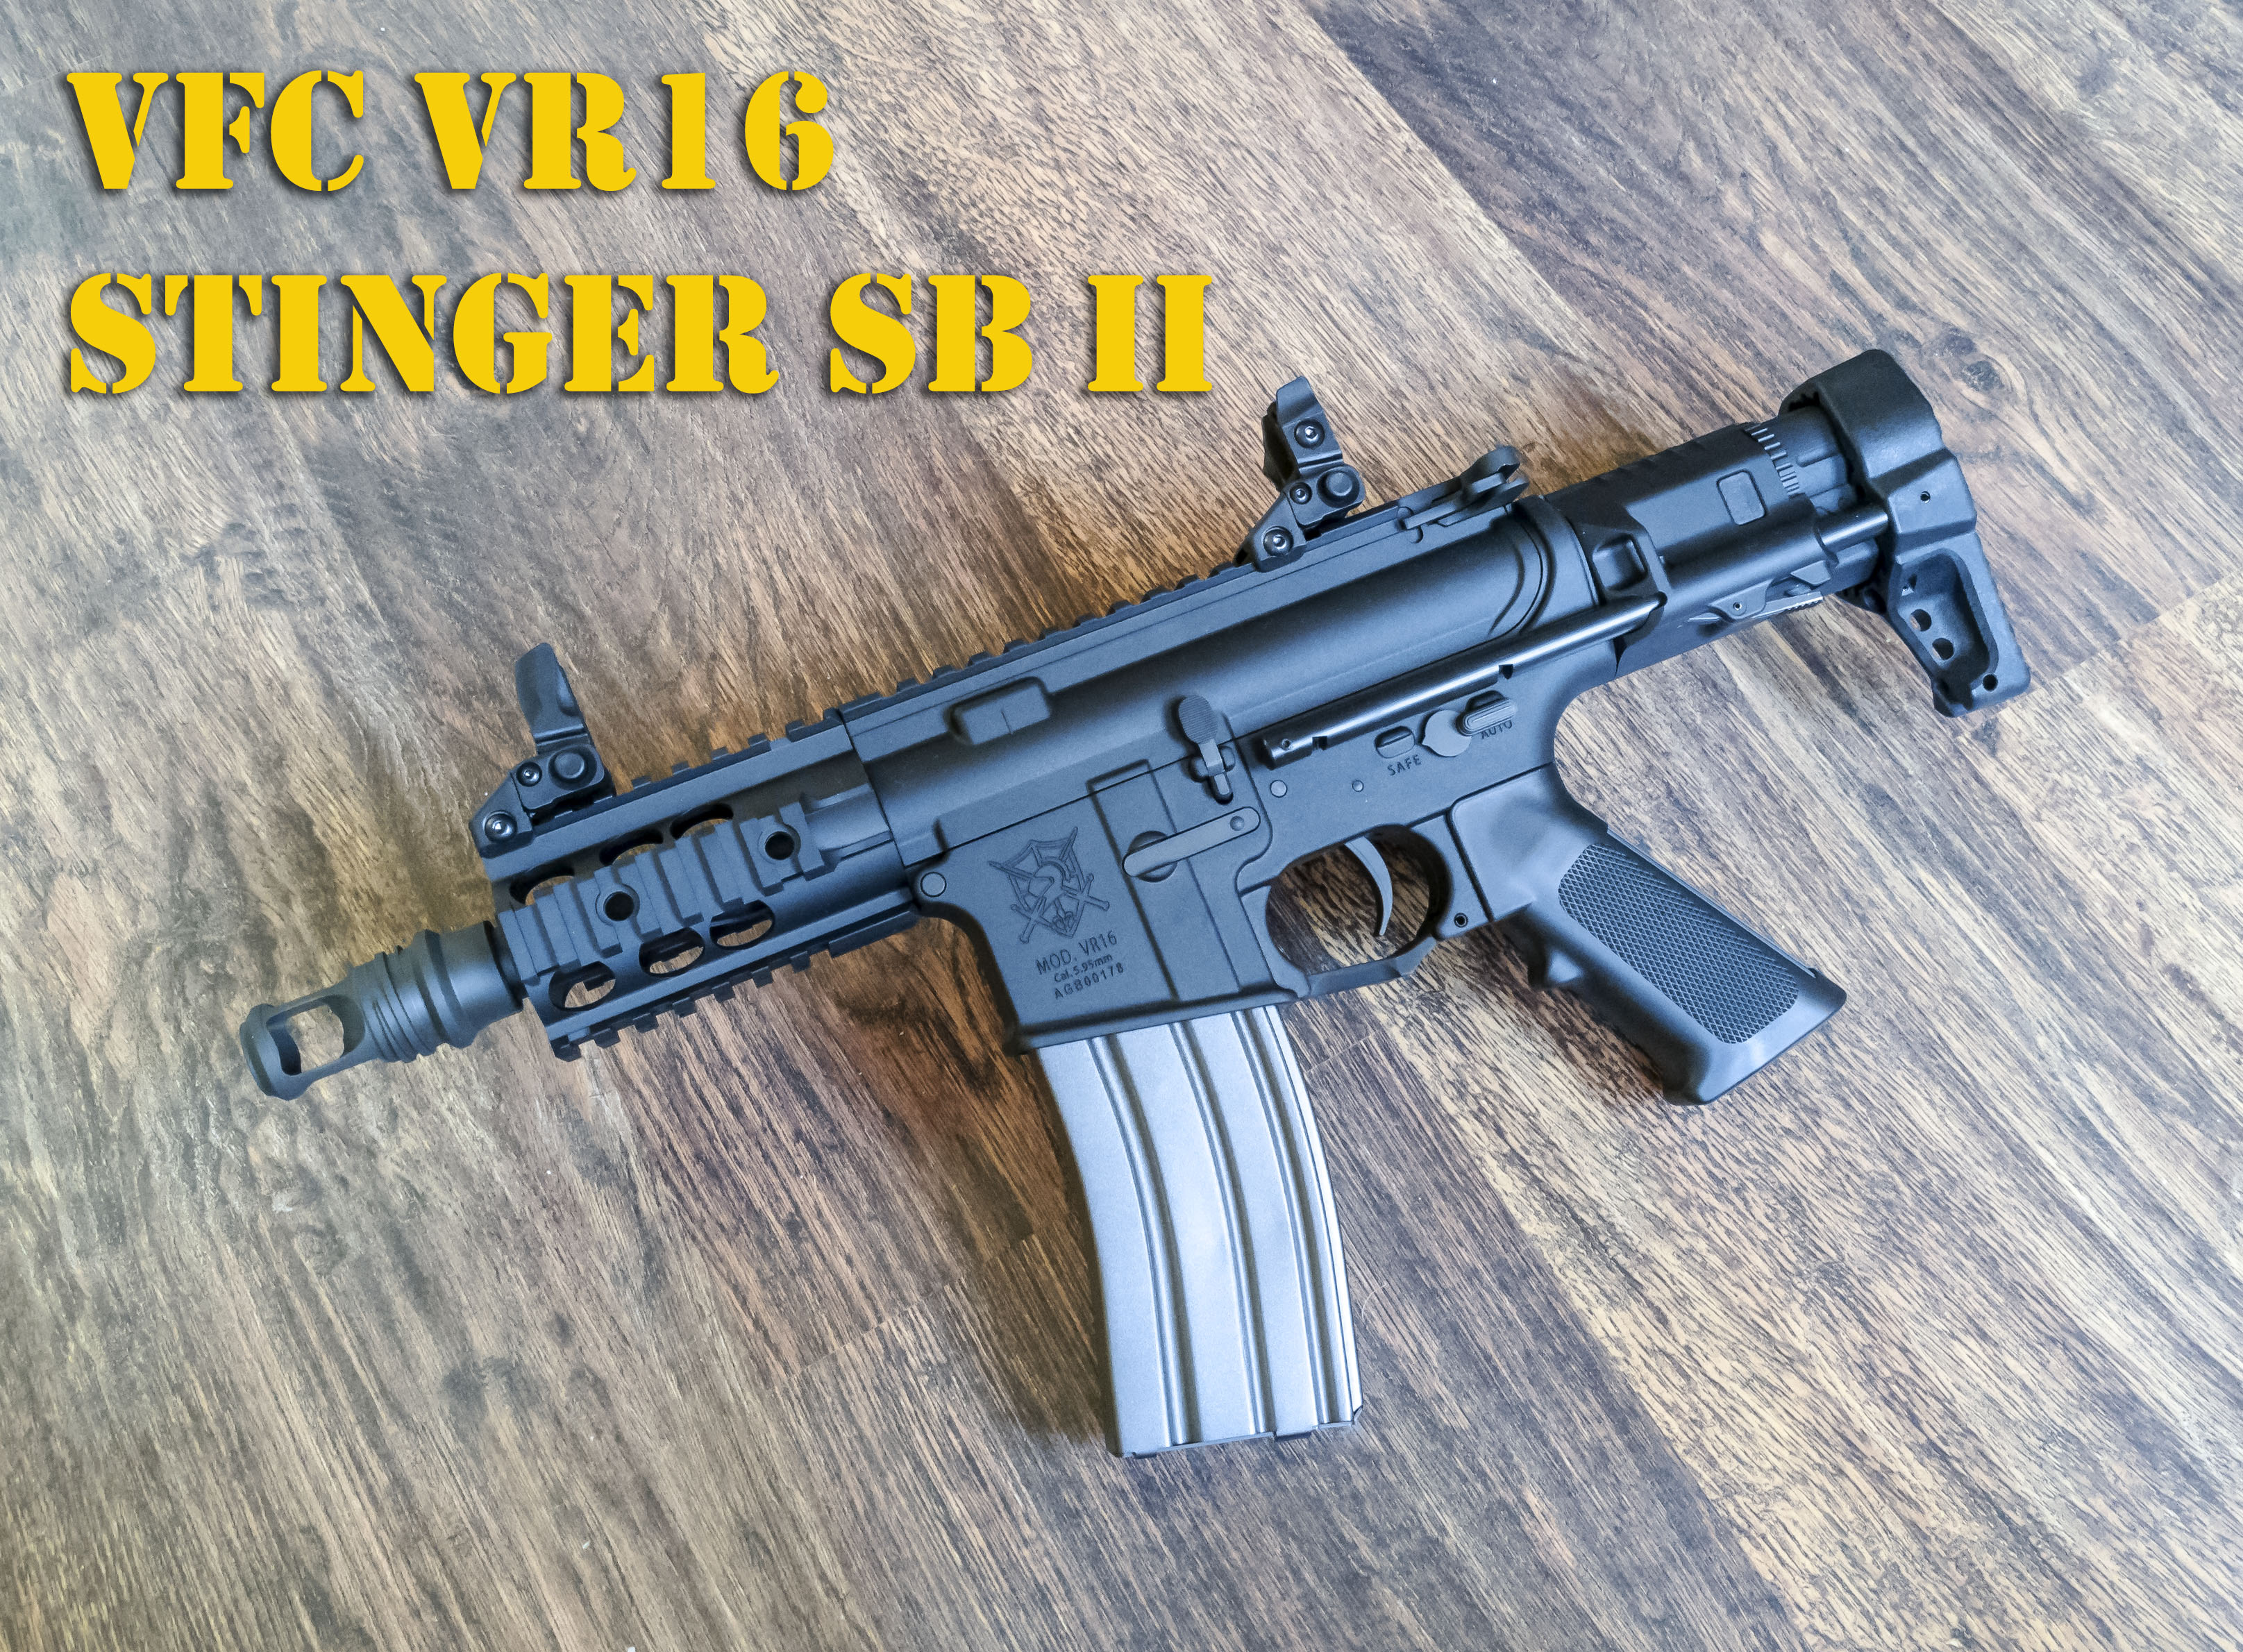 vfcstinger.jpg